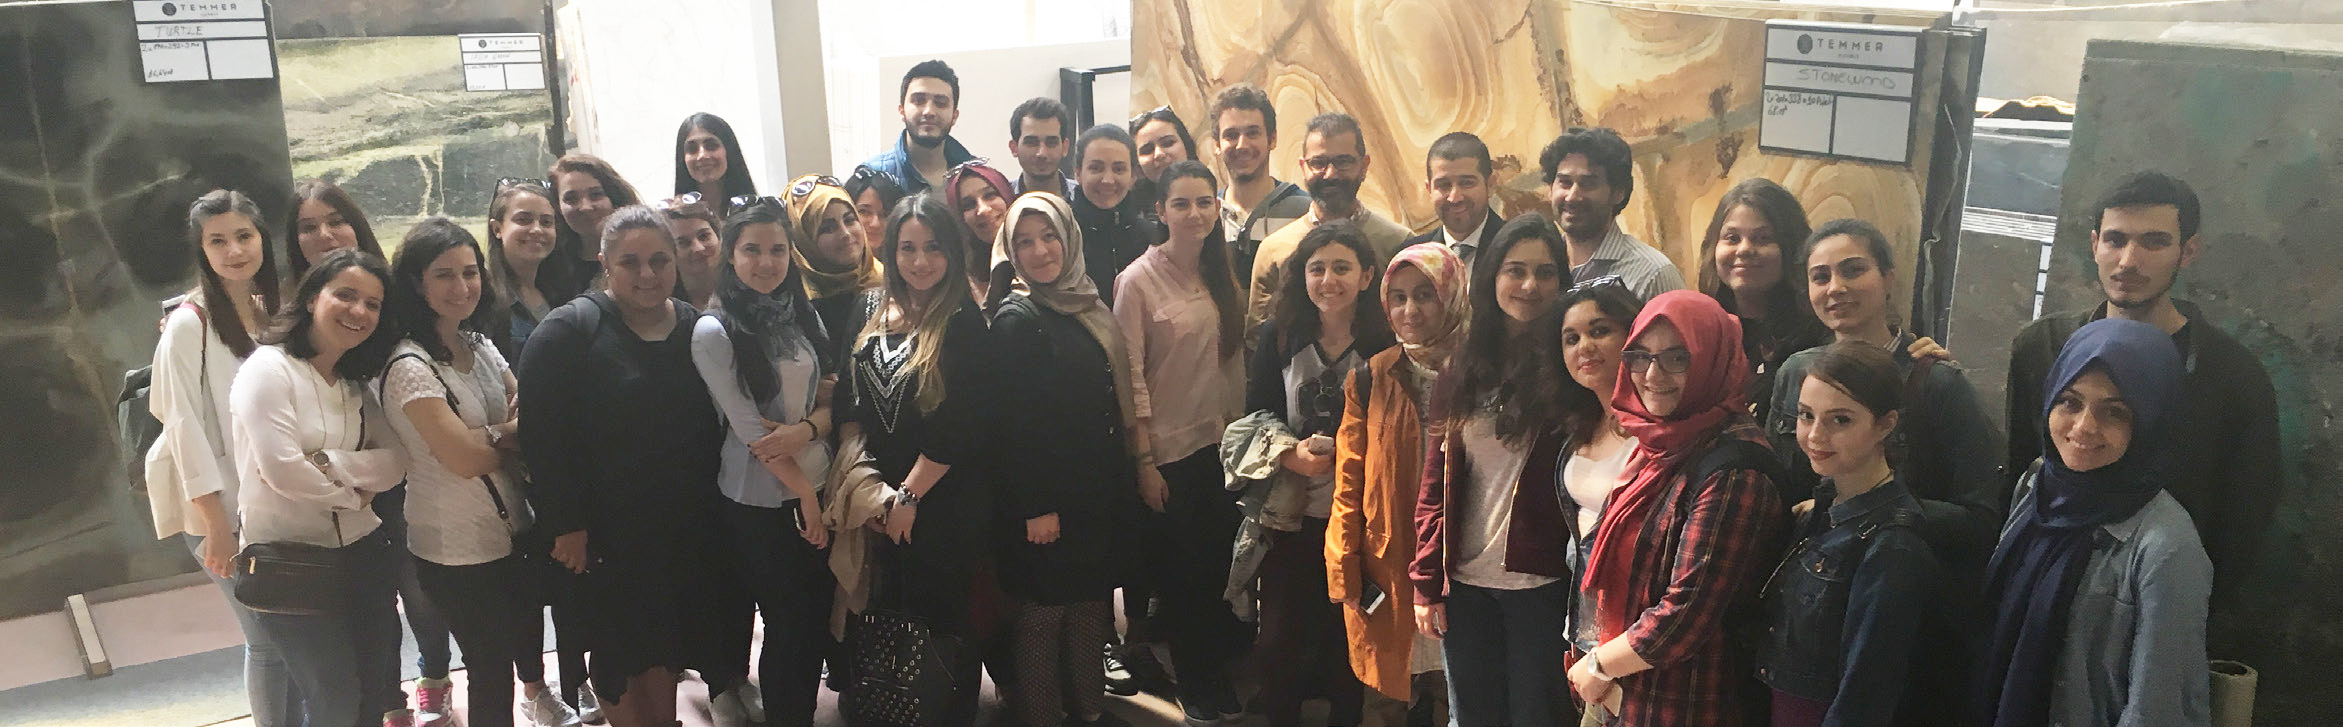 IMIB CONTINUES TO ORGANIZE EVENTS TO EMPHASIZE THE IMPORTANCE OF THE NATURAL STONE AND INTRODUCE IT TO THE YOUNG PROSPECTIVE STUDENTS OF ARCHITECTURE. STUDENTS FROM THE KEMERBURGAZ UNIVERSITY FACULTY OF INTERIOR DESIGN LISTENED ABOUT THE NATURAL STONES FROM THE IMIB AUTHORITIES AND EXPERIENCED THE NATURAL STONE IN SITE ALONG WITH A CORPORATE TRAVEL